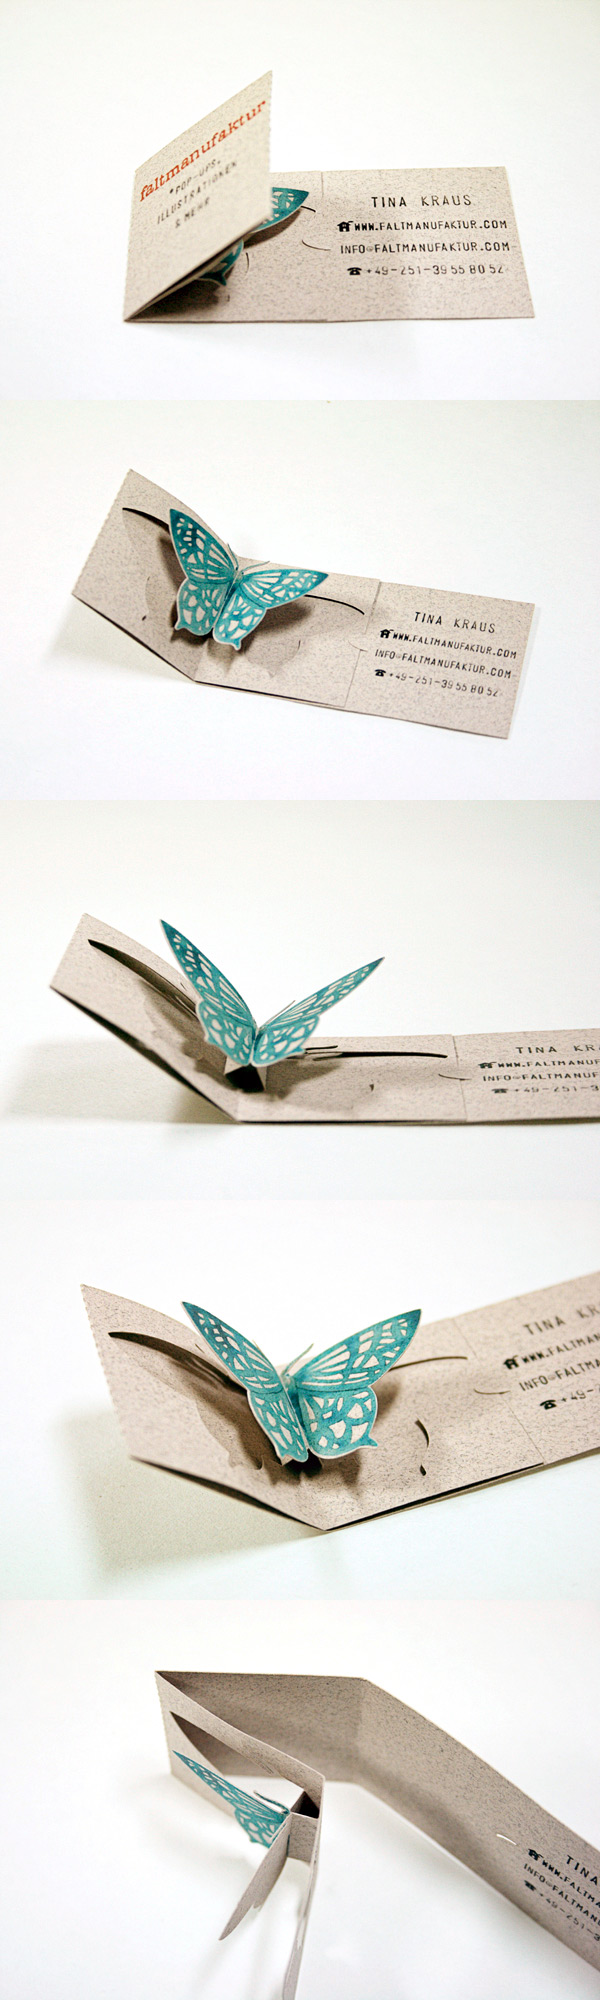 Faltmanufaktur Creative Folding Business Card